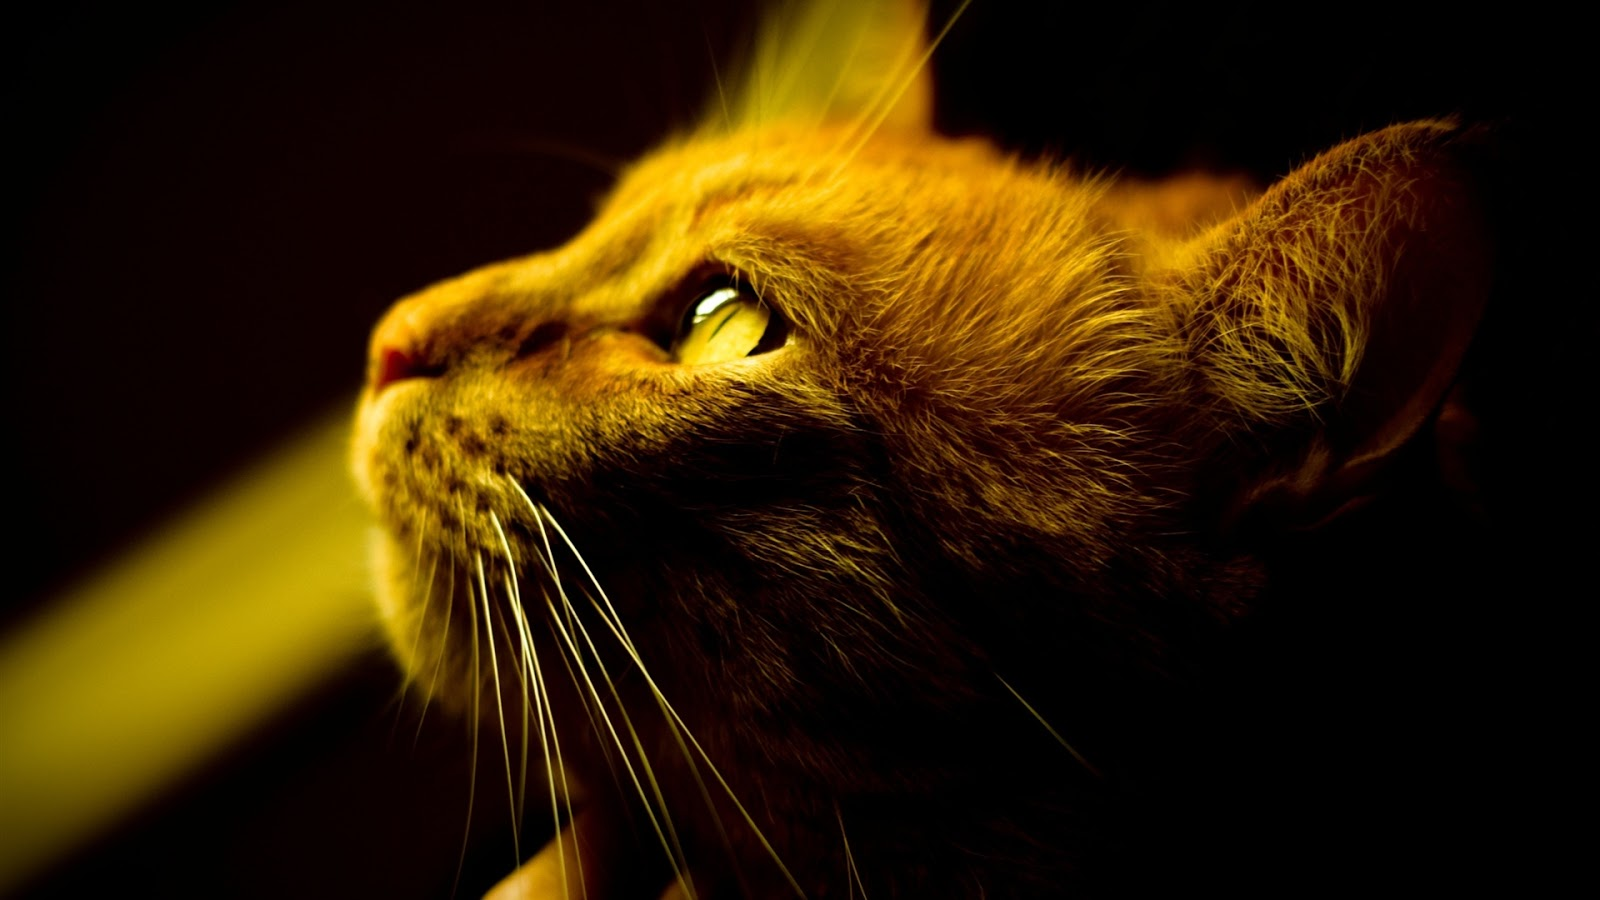 Brown Cat with Yellow Eyes HDQ Wallpapers 1600x900